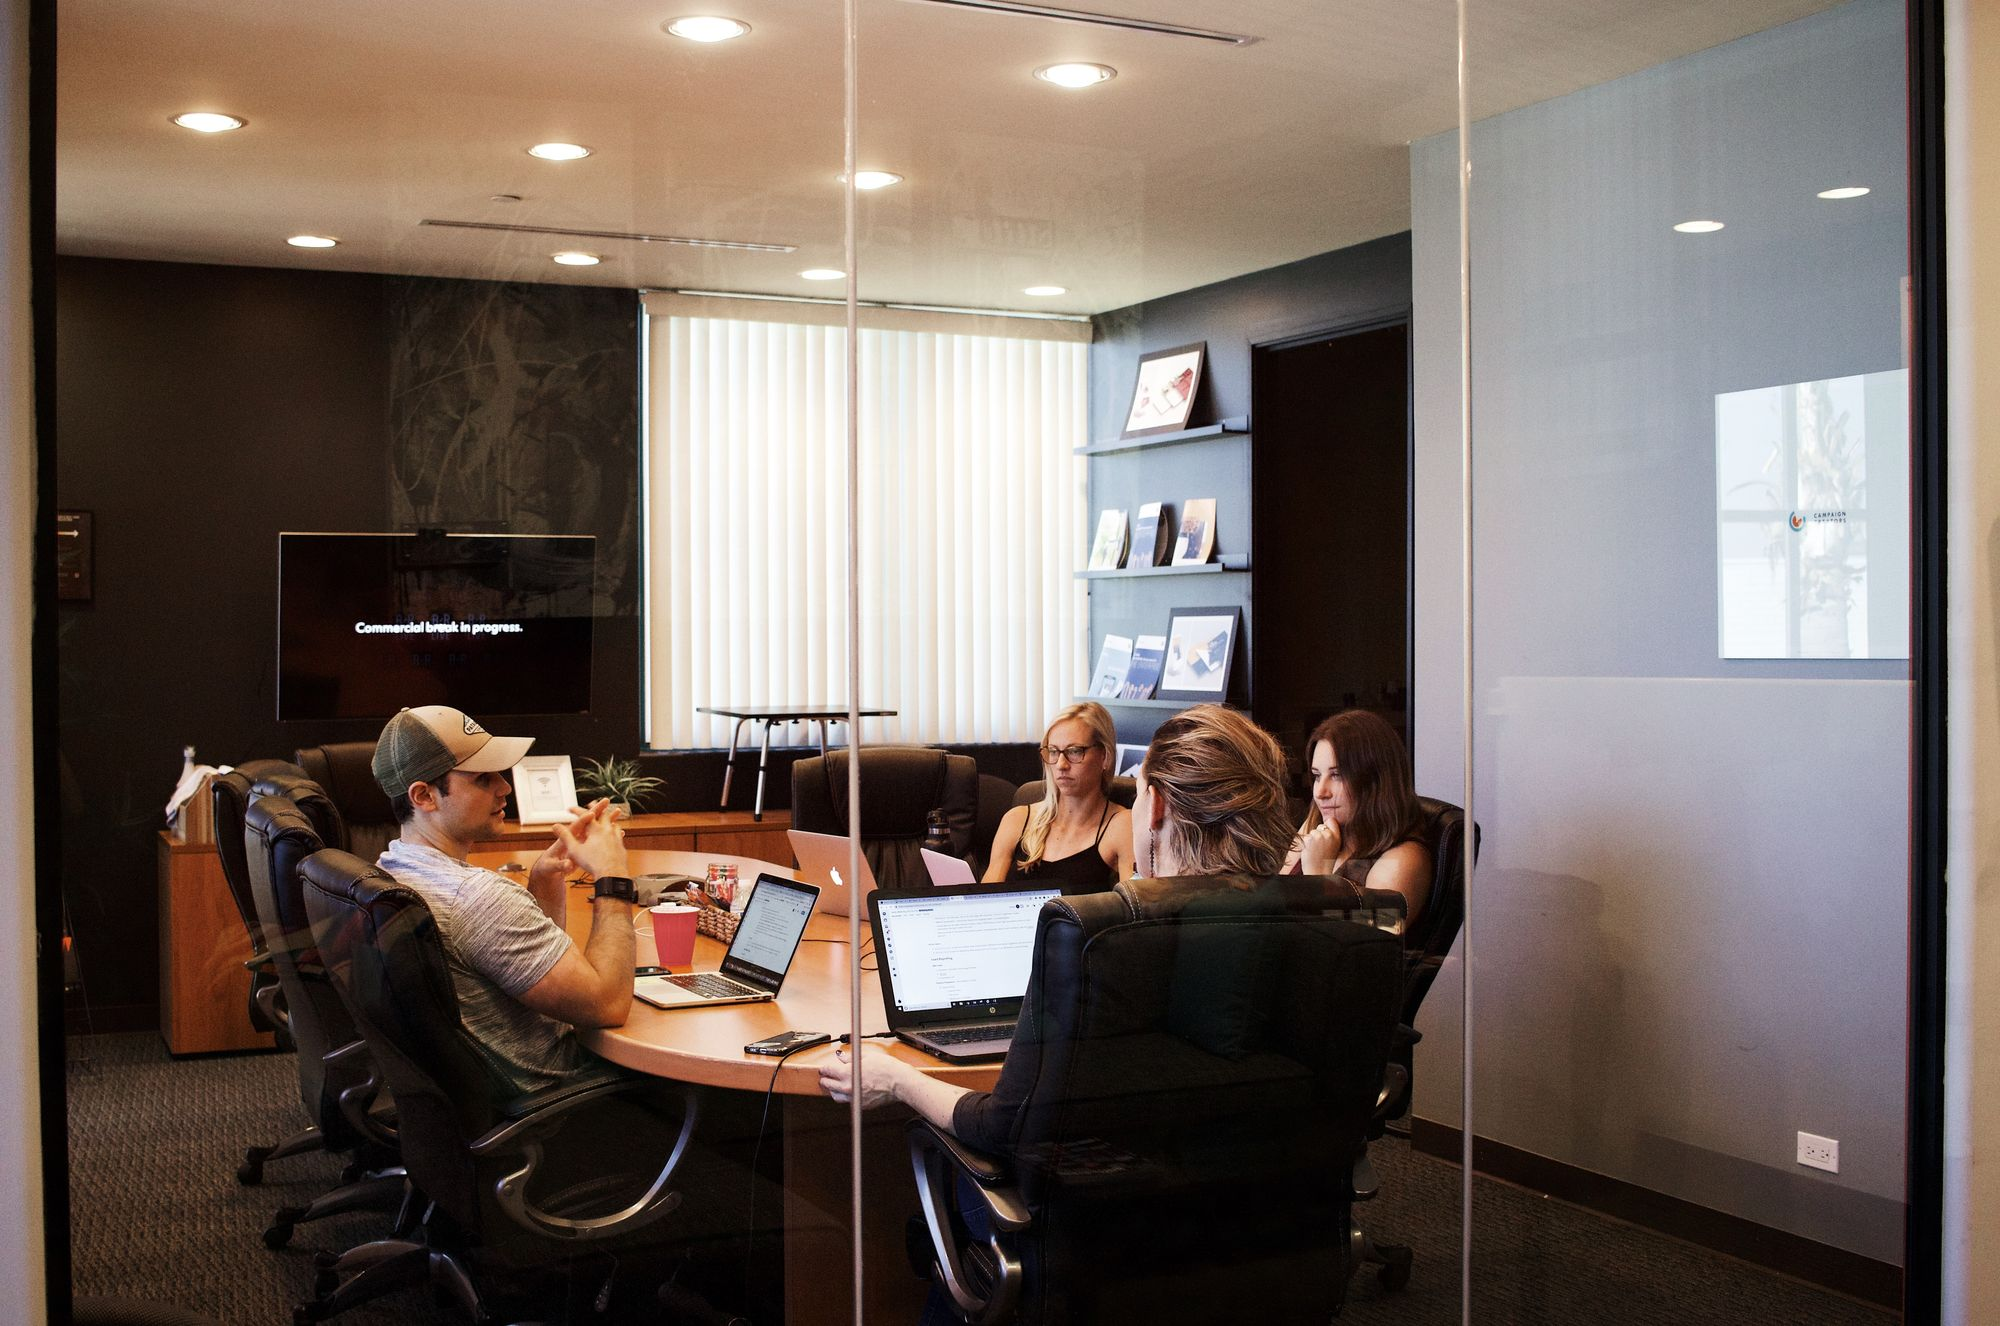 Five people sit around a conference room table